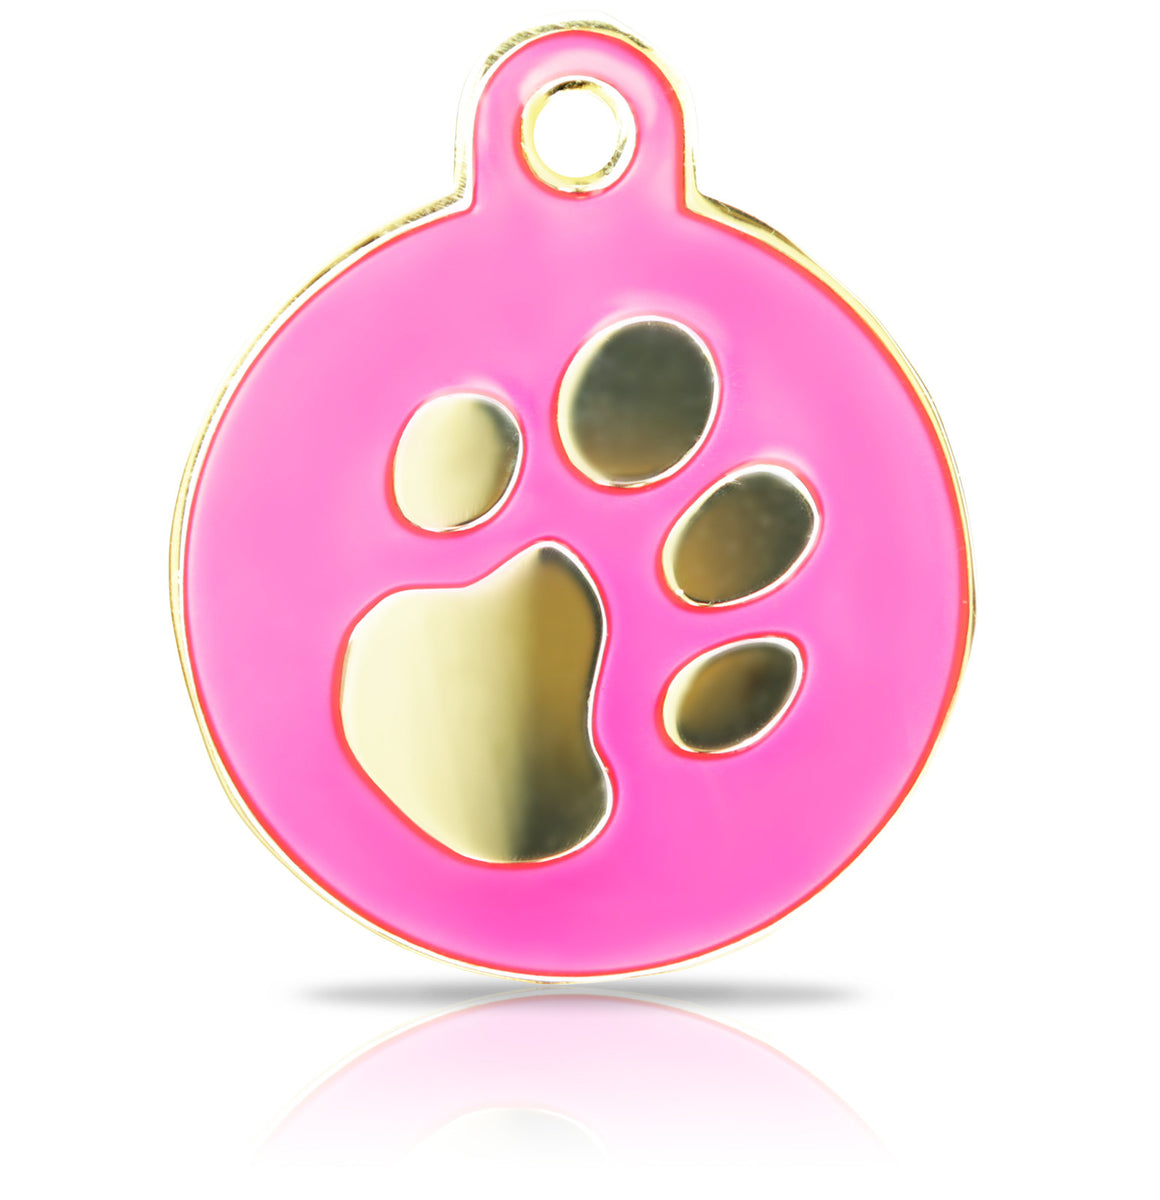 TaggIT Elegance Large Disc Pink & Gold Disc Pet Tag iMarc Tag